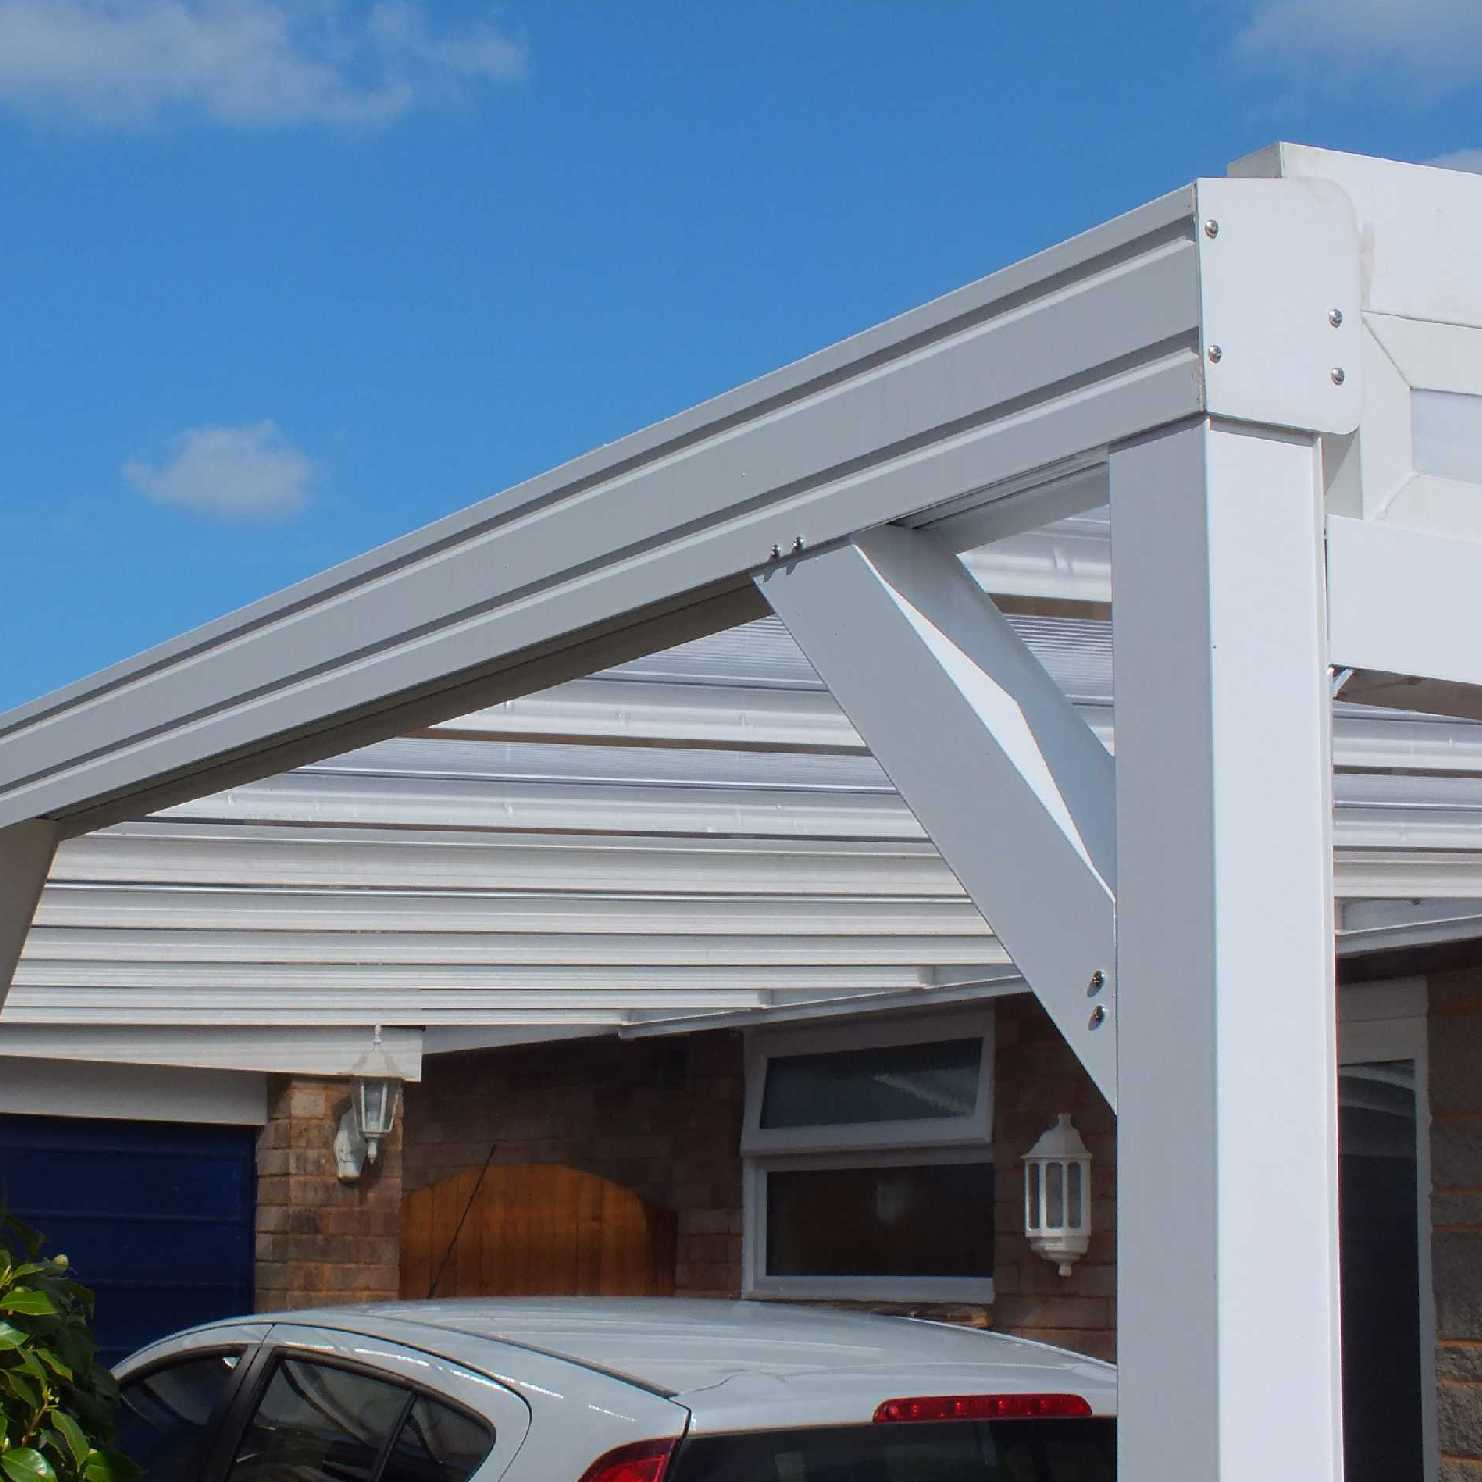 Buy Omega Smart White Lean-To Canopy with 16mm Polycarbonate Glazing - 5.9m (W) x 4.5m (P), (3) Supporting Posts online today